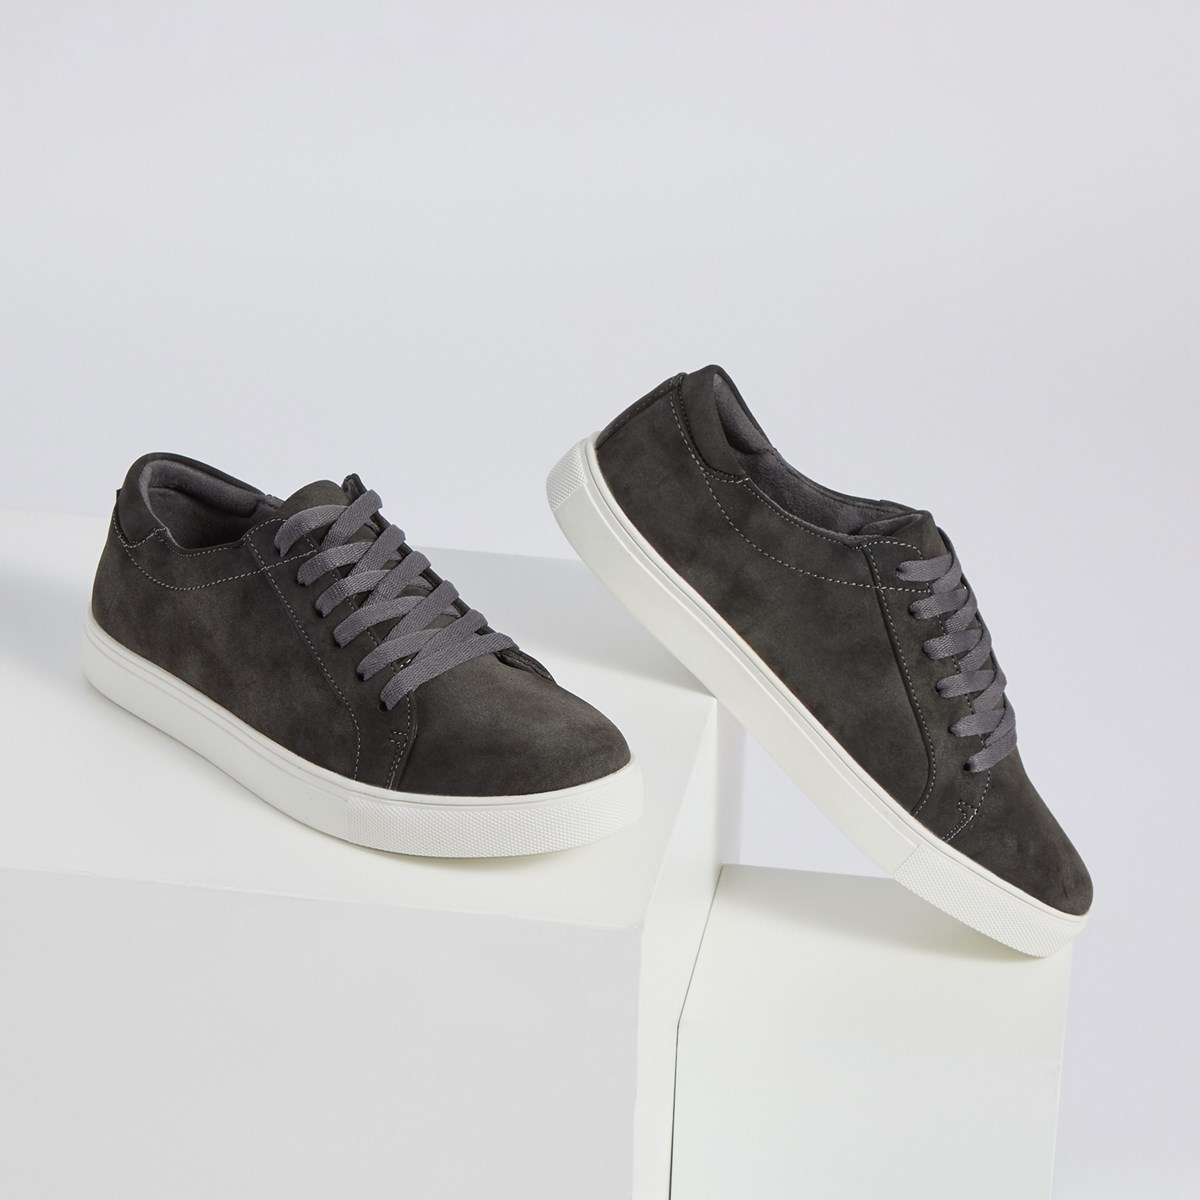 Men's Stand Sneakers in Grey